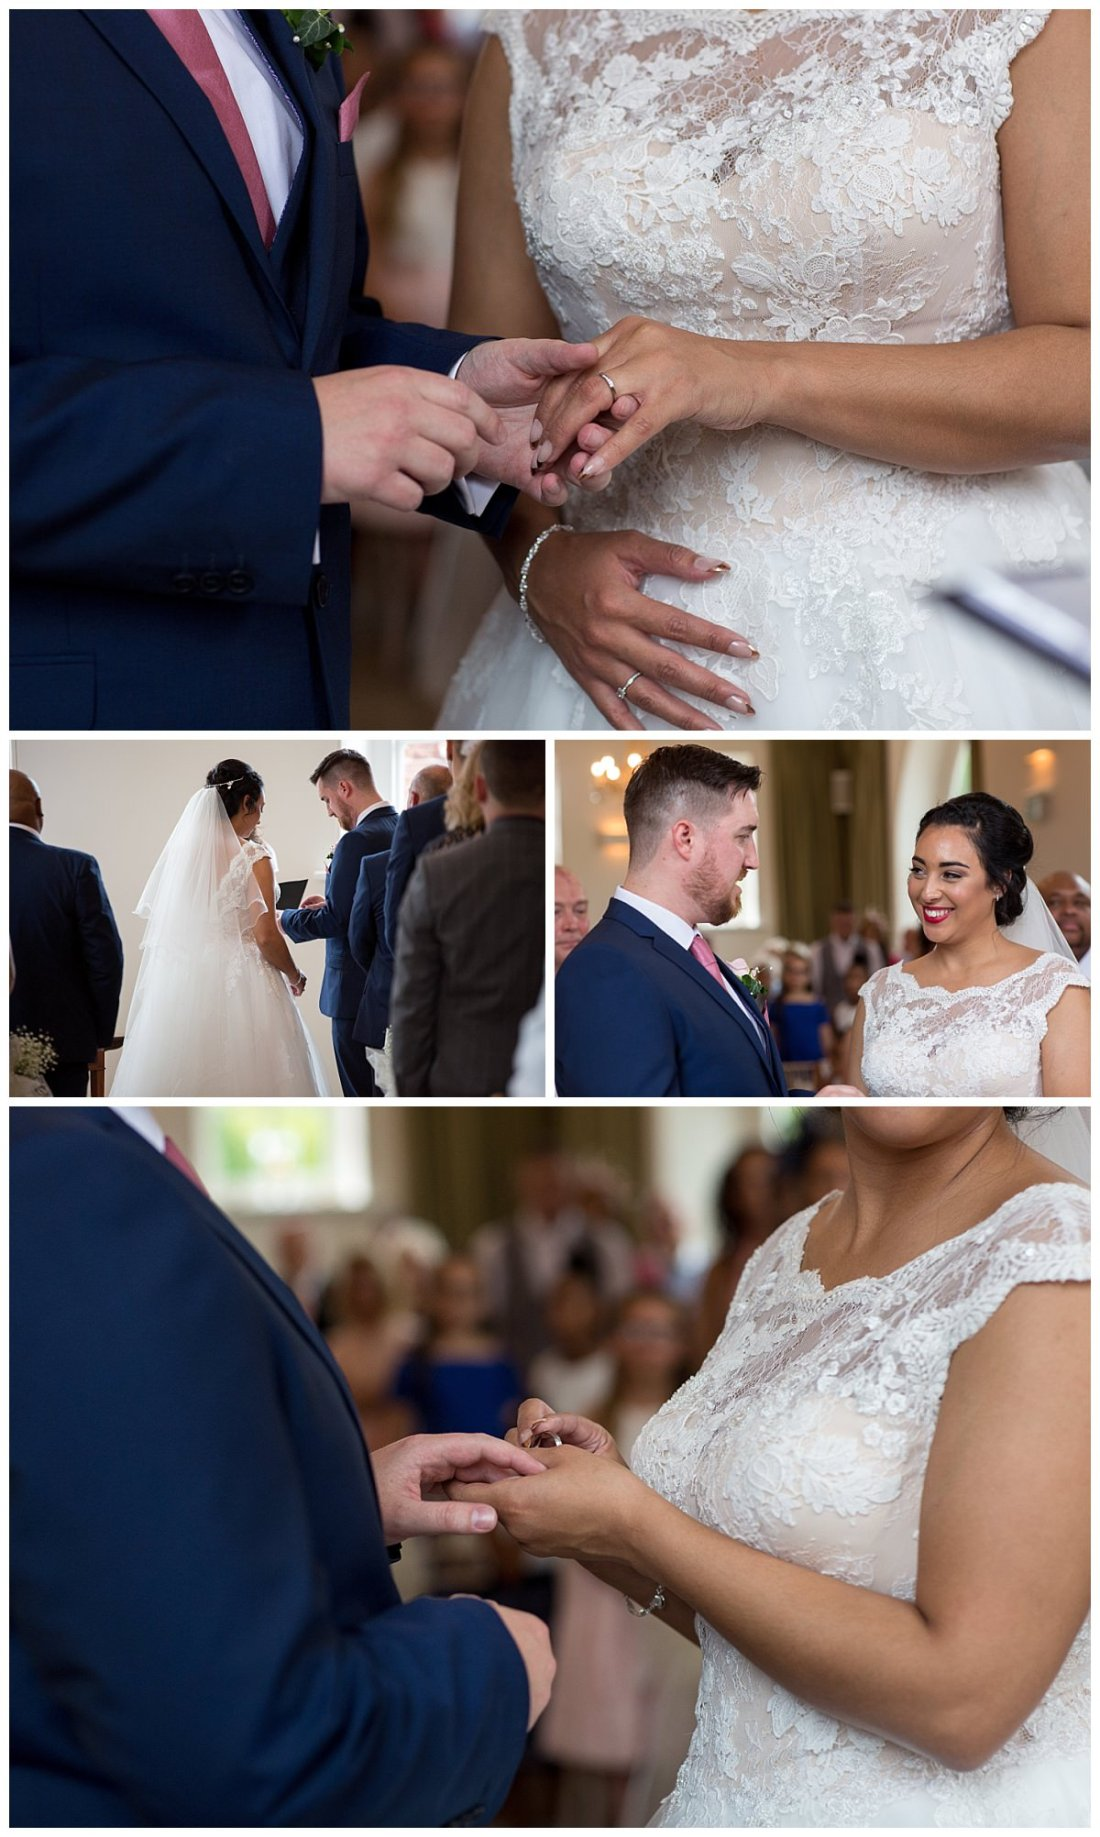 bride and groom placing rings on fingers at Iscoyd Park wedding ceremony